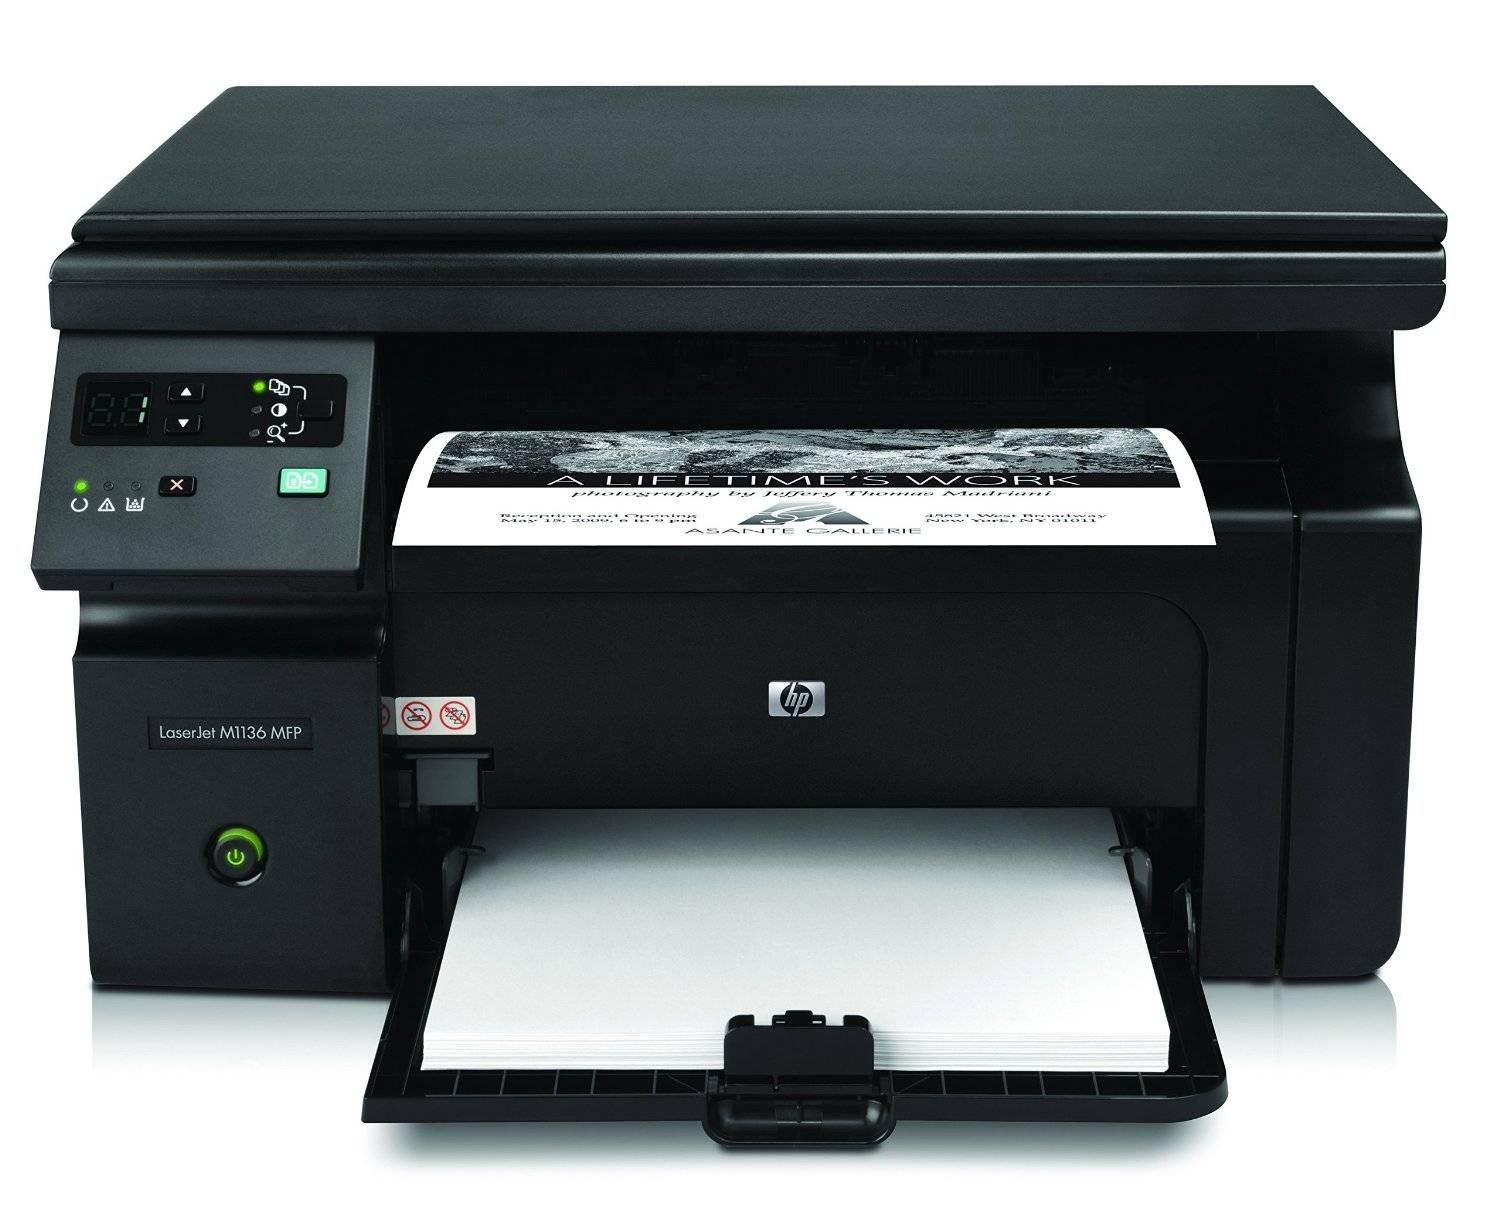 HP M1136 MFP Laserjet All-in-One Printer - Lowest Price